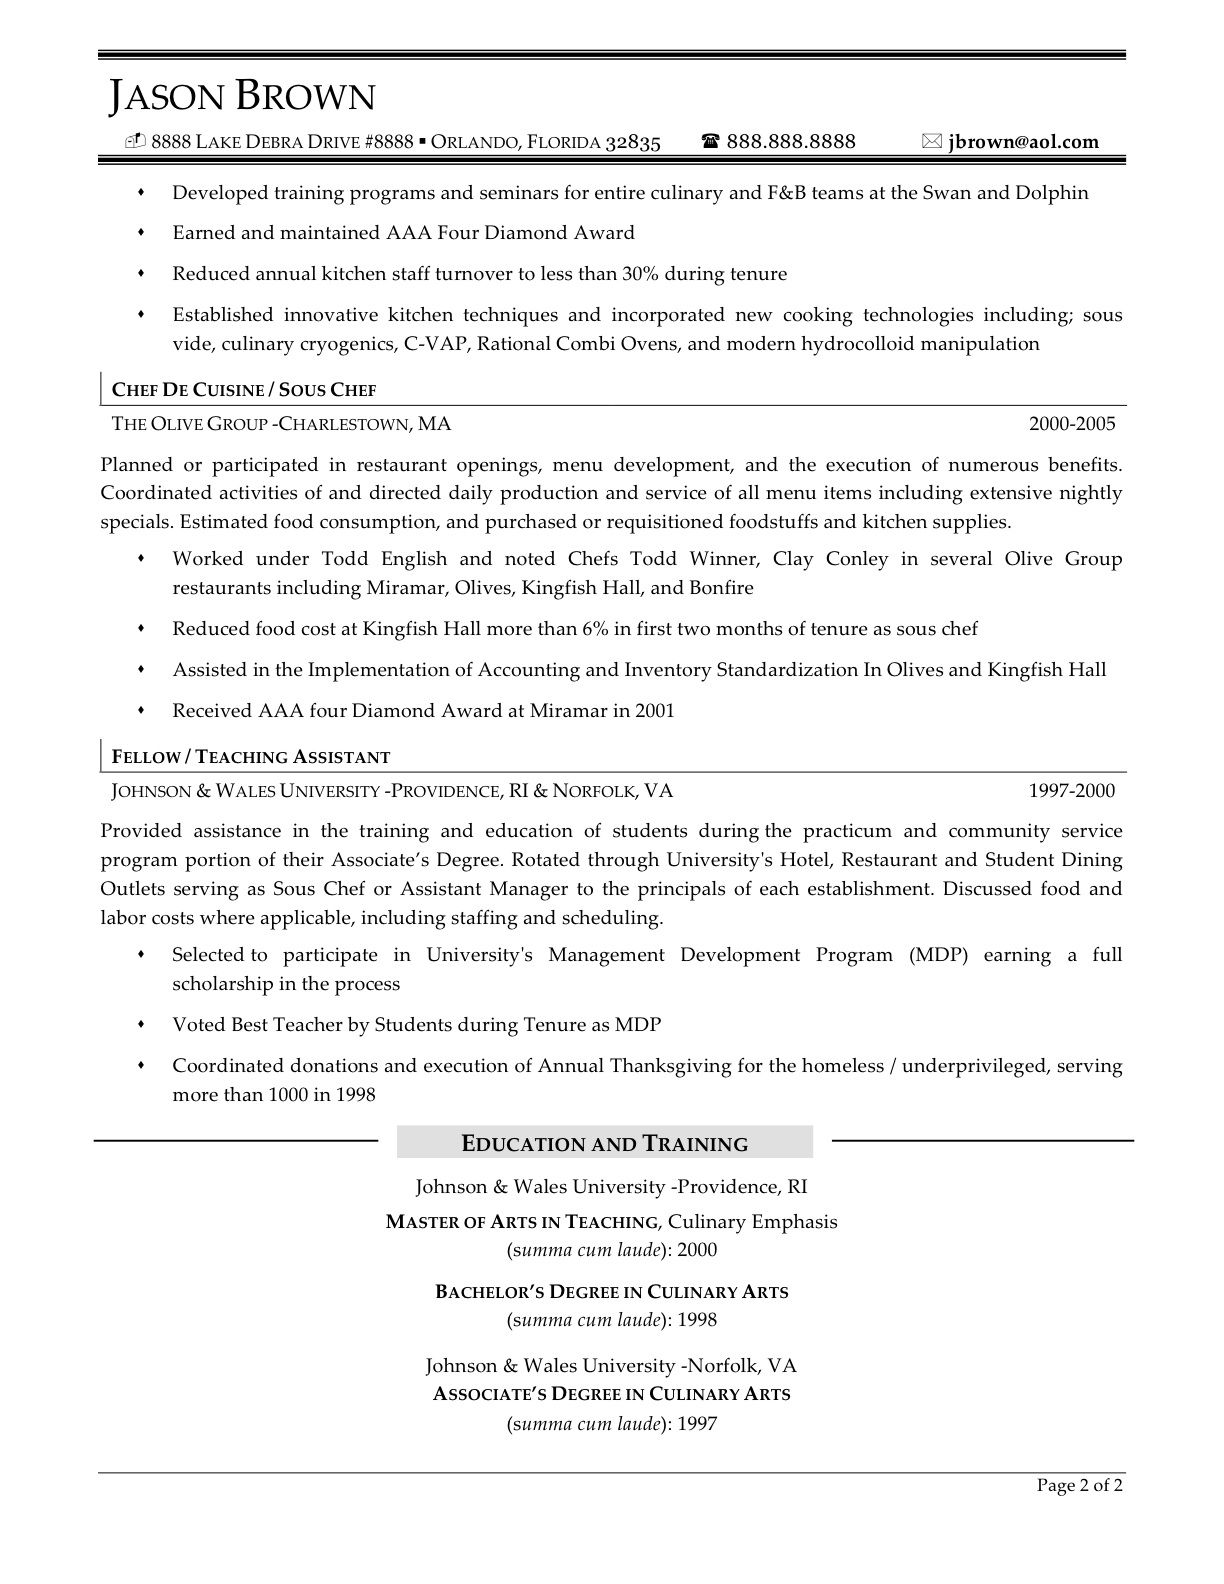 Executive Chef Resume Template Chef Cook Resume Examples  Httpwwwjobresumewebsitechefcook